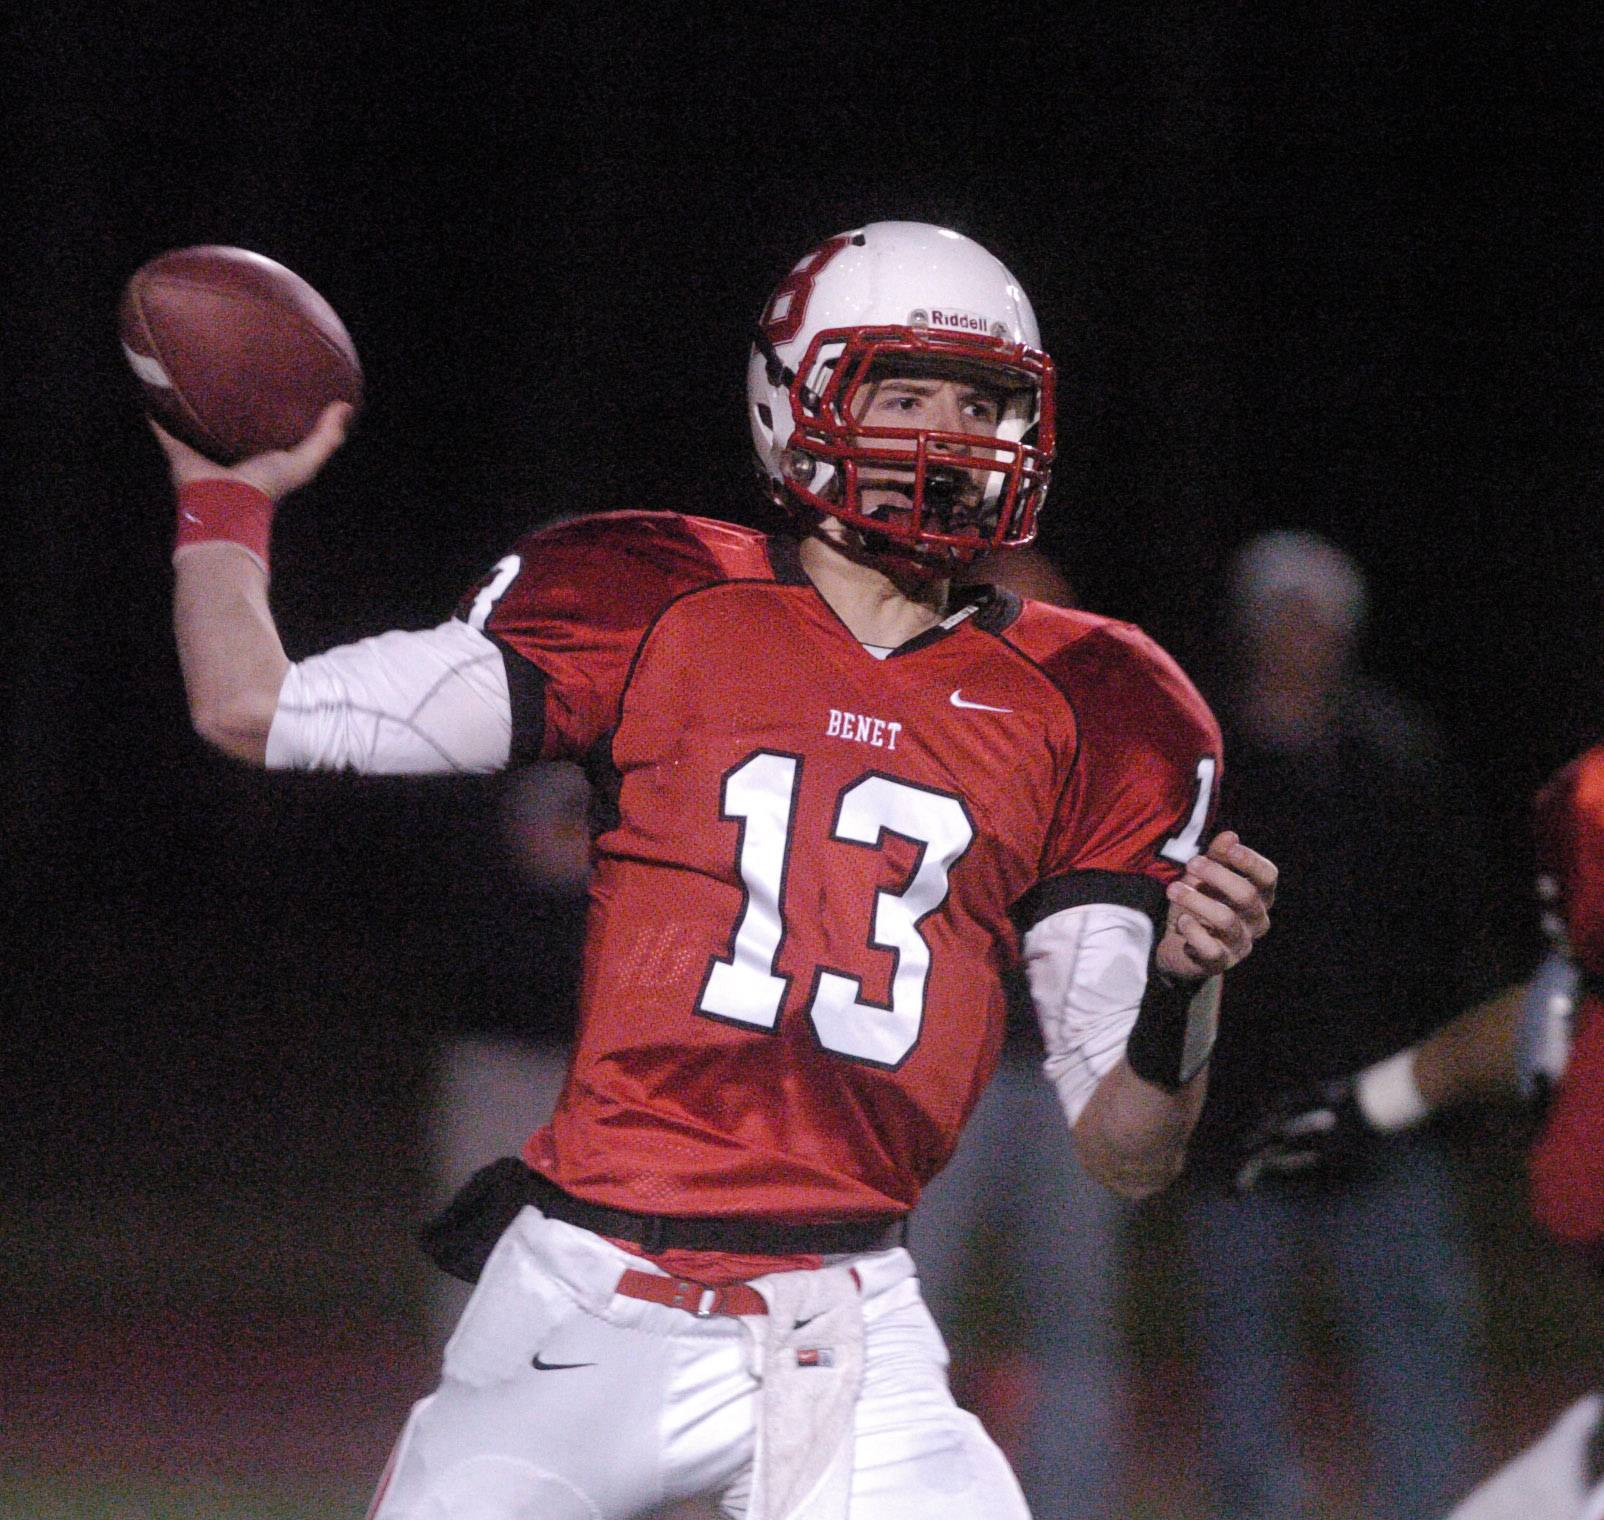 Senior quarterback Jack Beneventi is transferring to Fenwick from Benet.